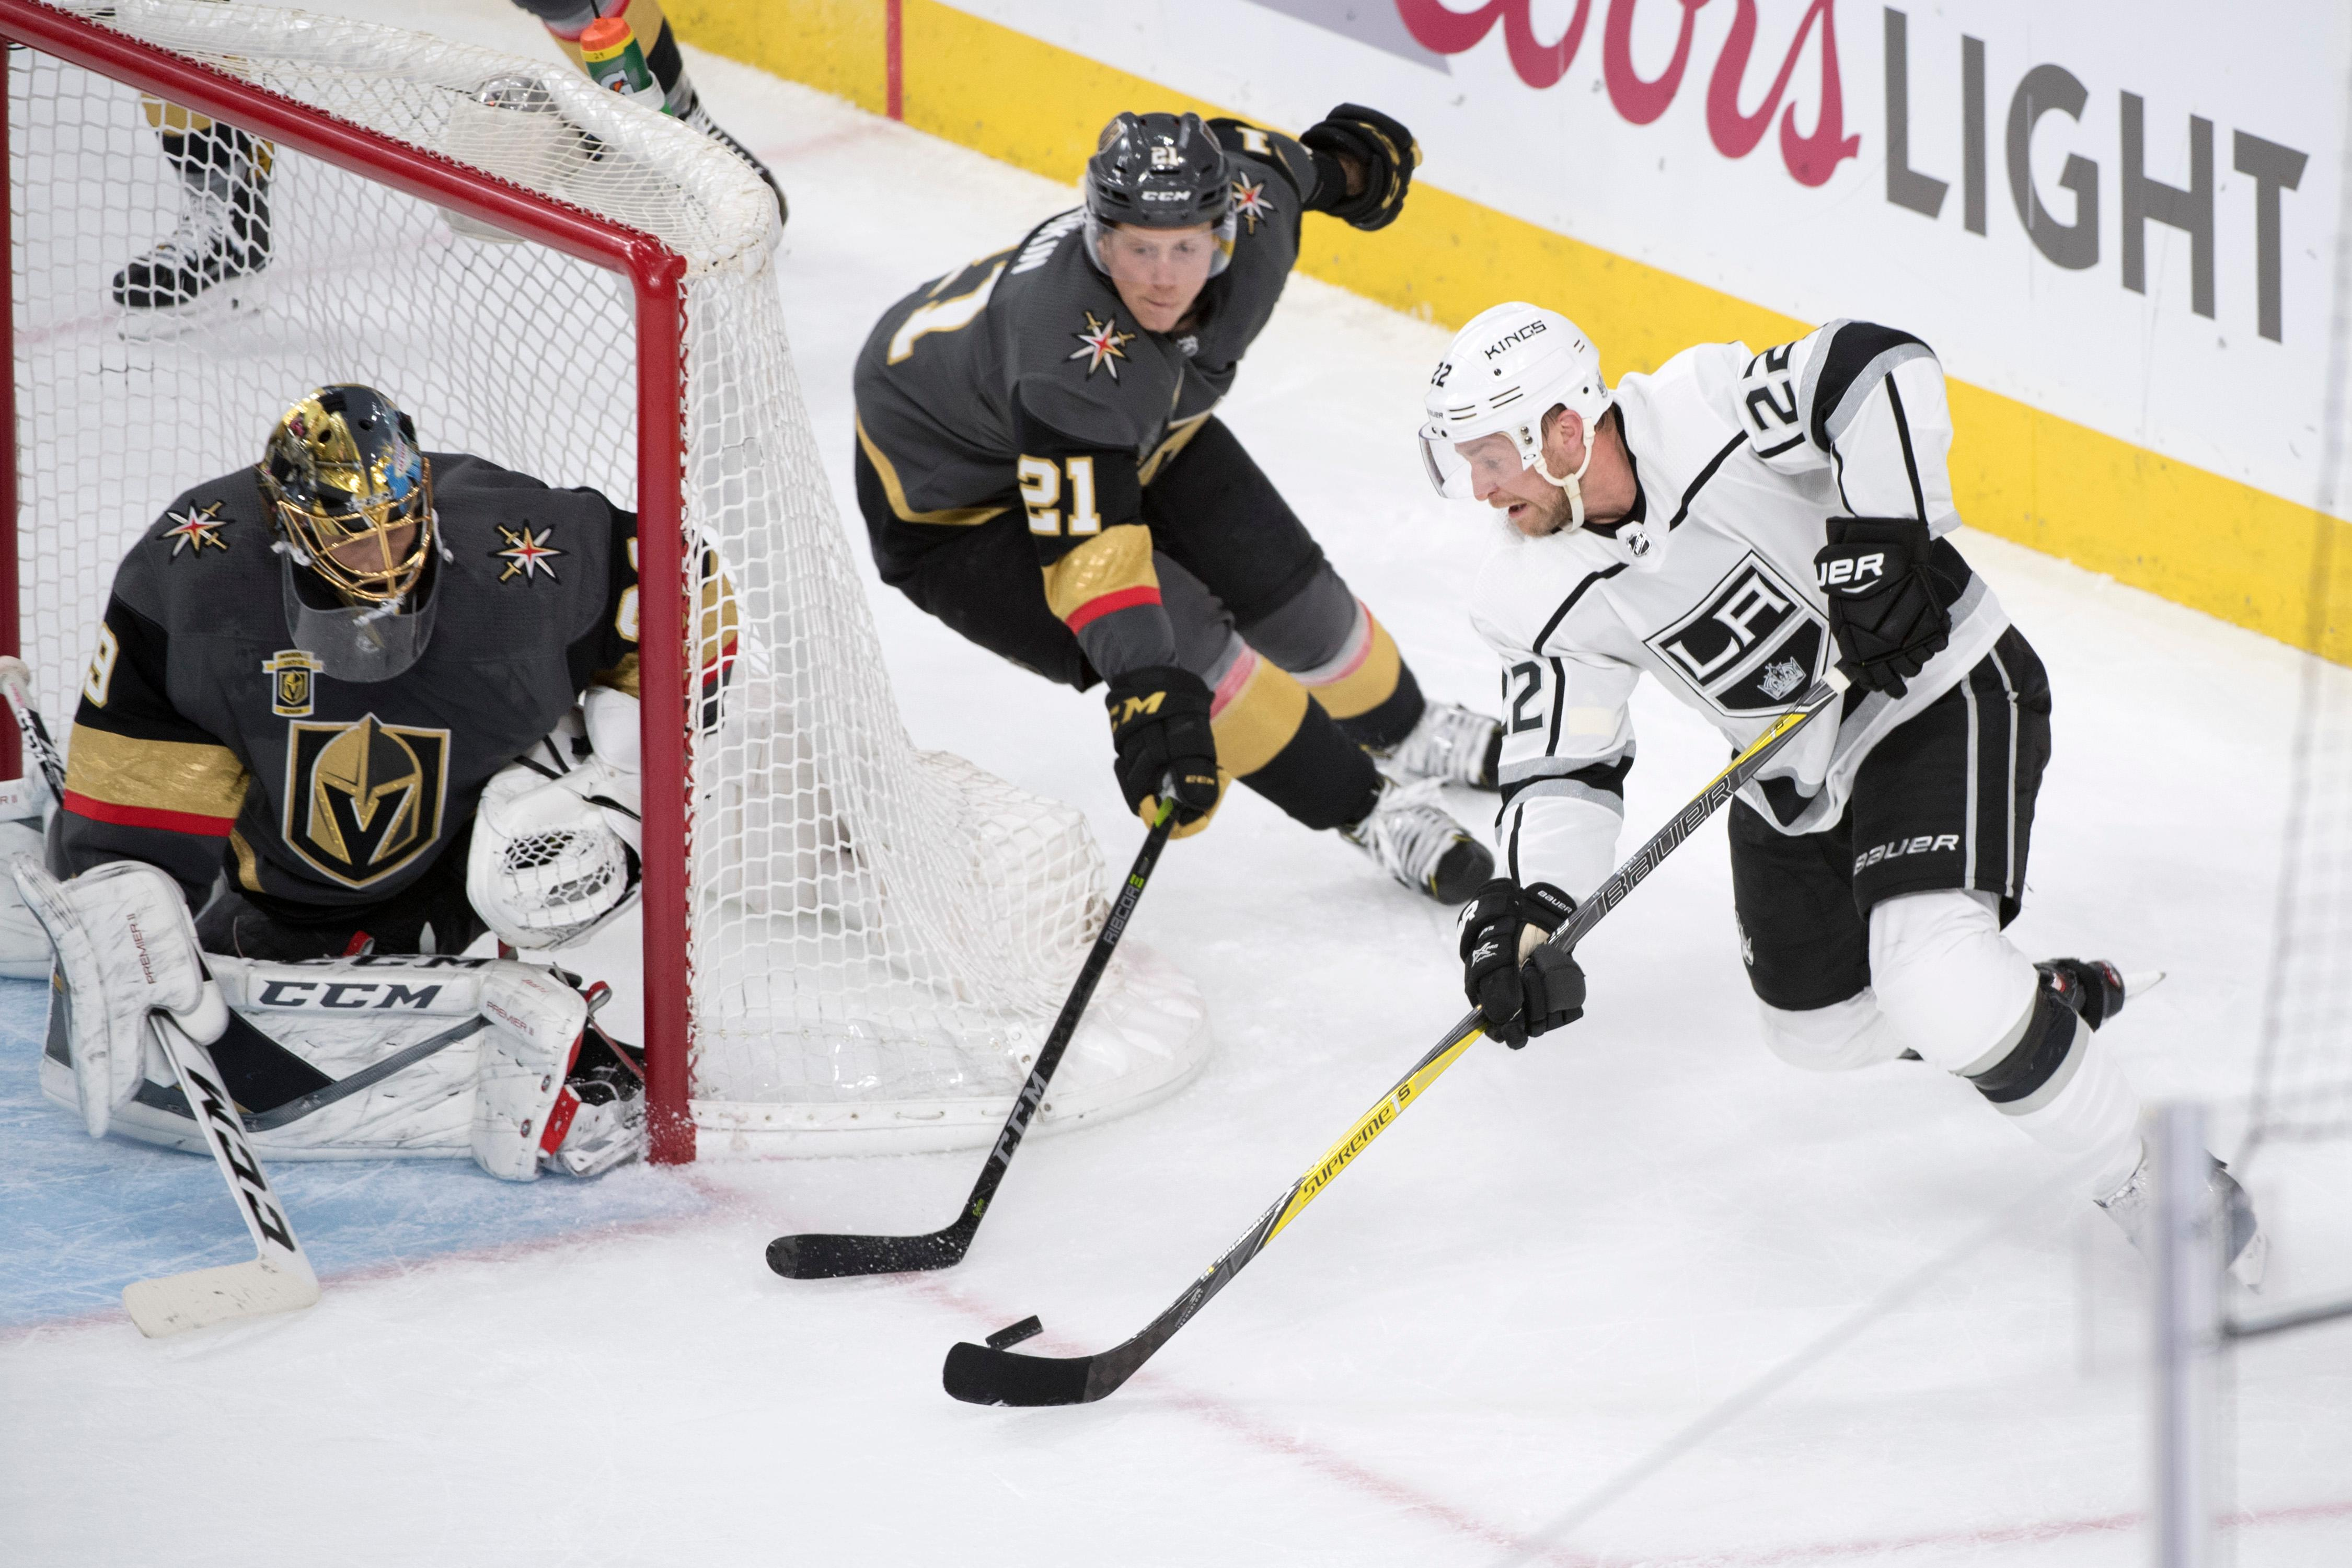 Los Angeles Kings center Trevor Lewis (22) is defended by Vegas Golden Knights center Cody Eakin (21) as he tries to make a wrap around shot during the second period of Game 1 of their NHL hockey first-round playoff series Wednesday, April 11, 2018 at T-Mobile Arena. The Knights won 1-0. CREDIT: Sam Morris/Las Vegas News Bureau